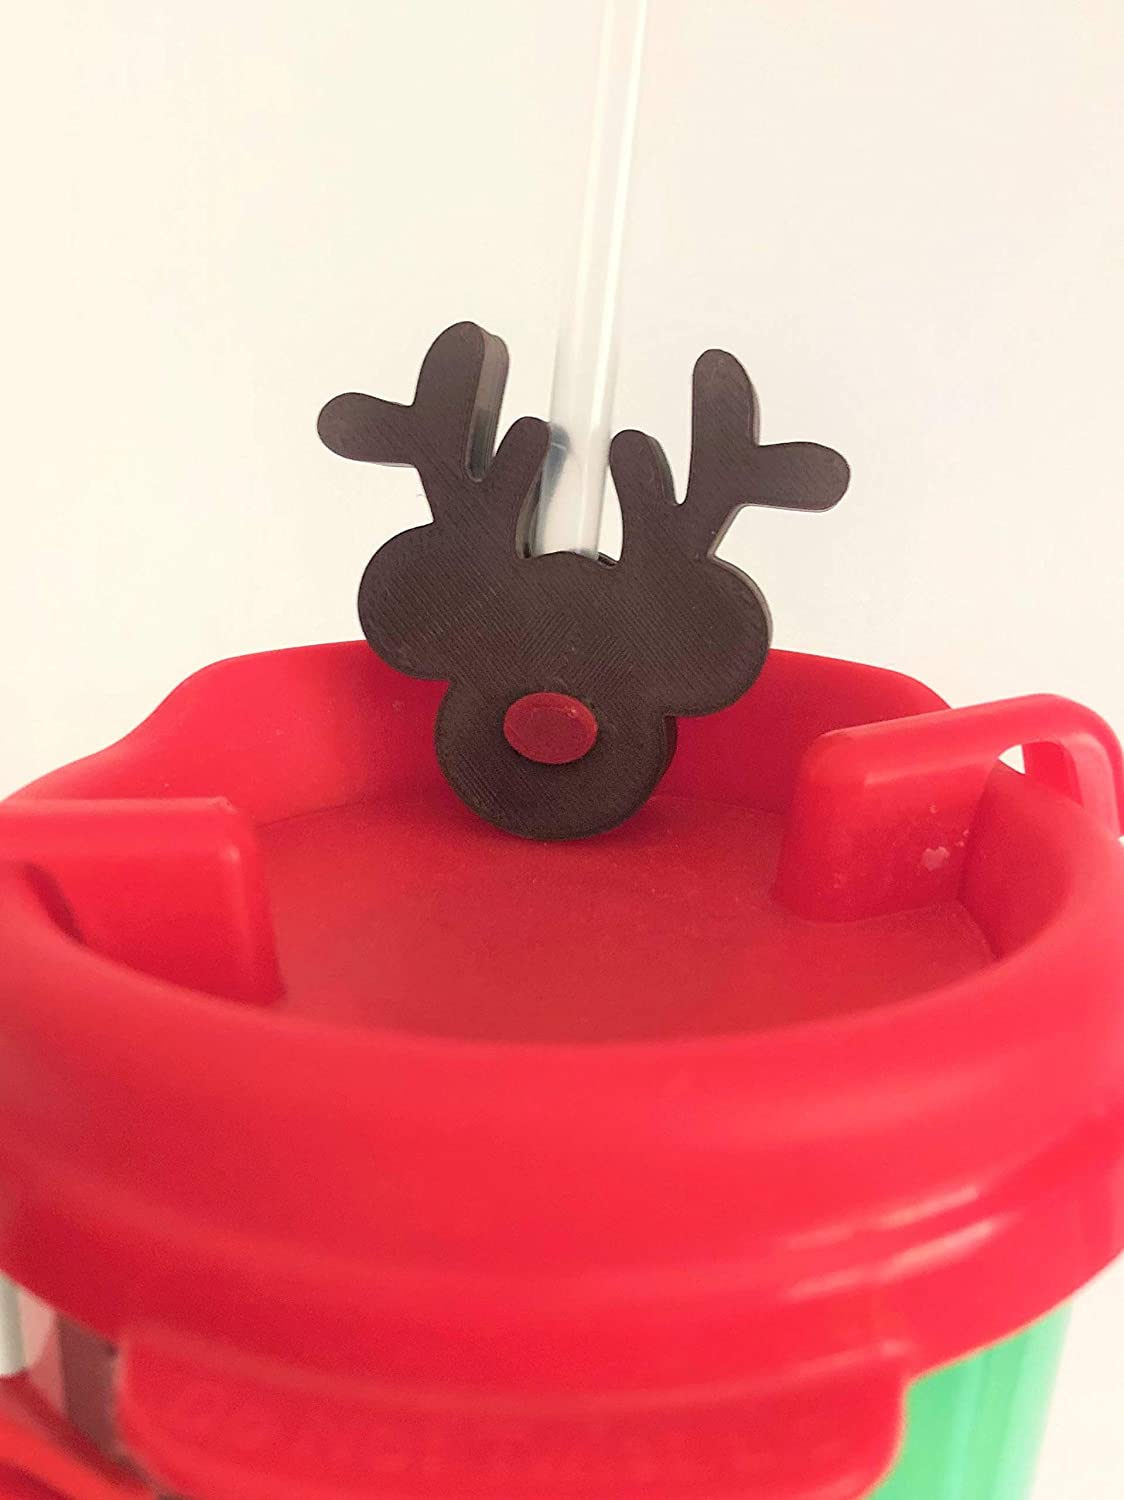 3D Printed Christmas Red Nosed Head Decorat Straw Mouse Reindeer Las Ranking TOP7 Vegas Mall